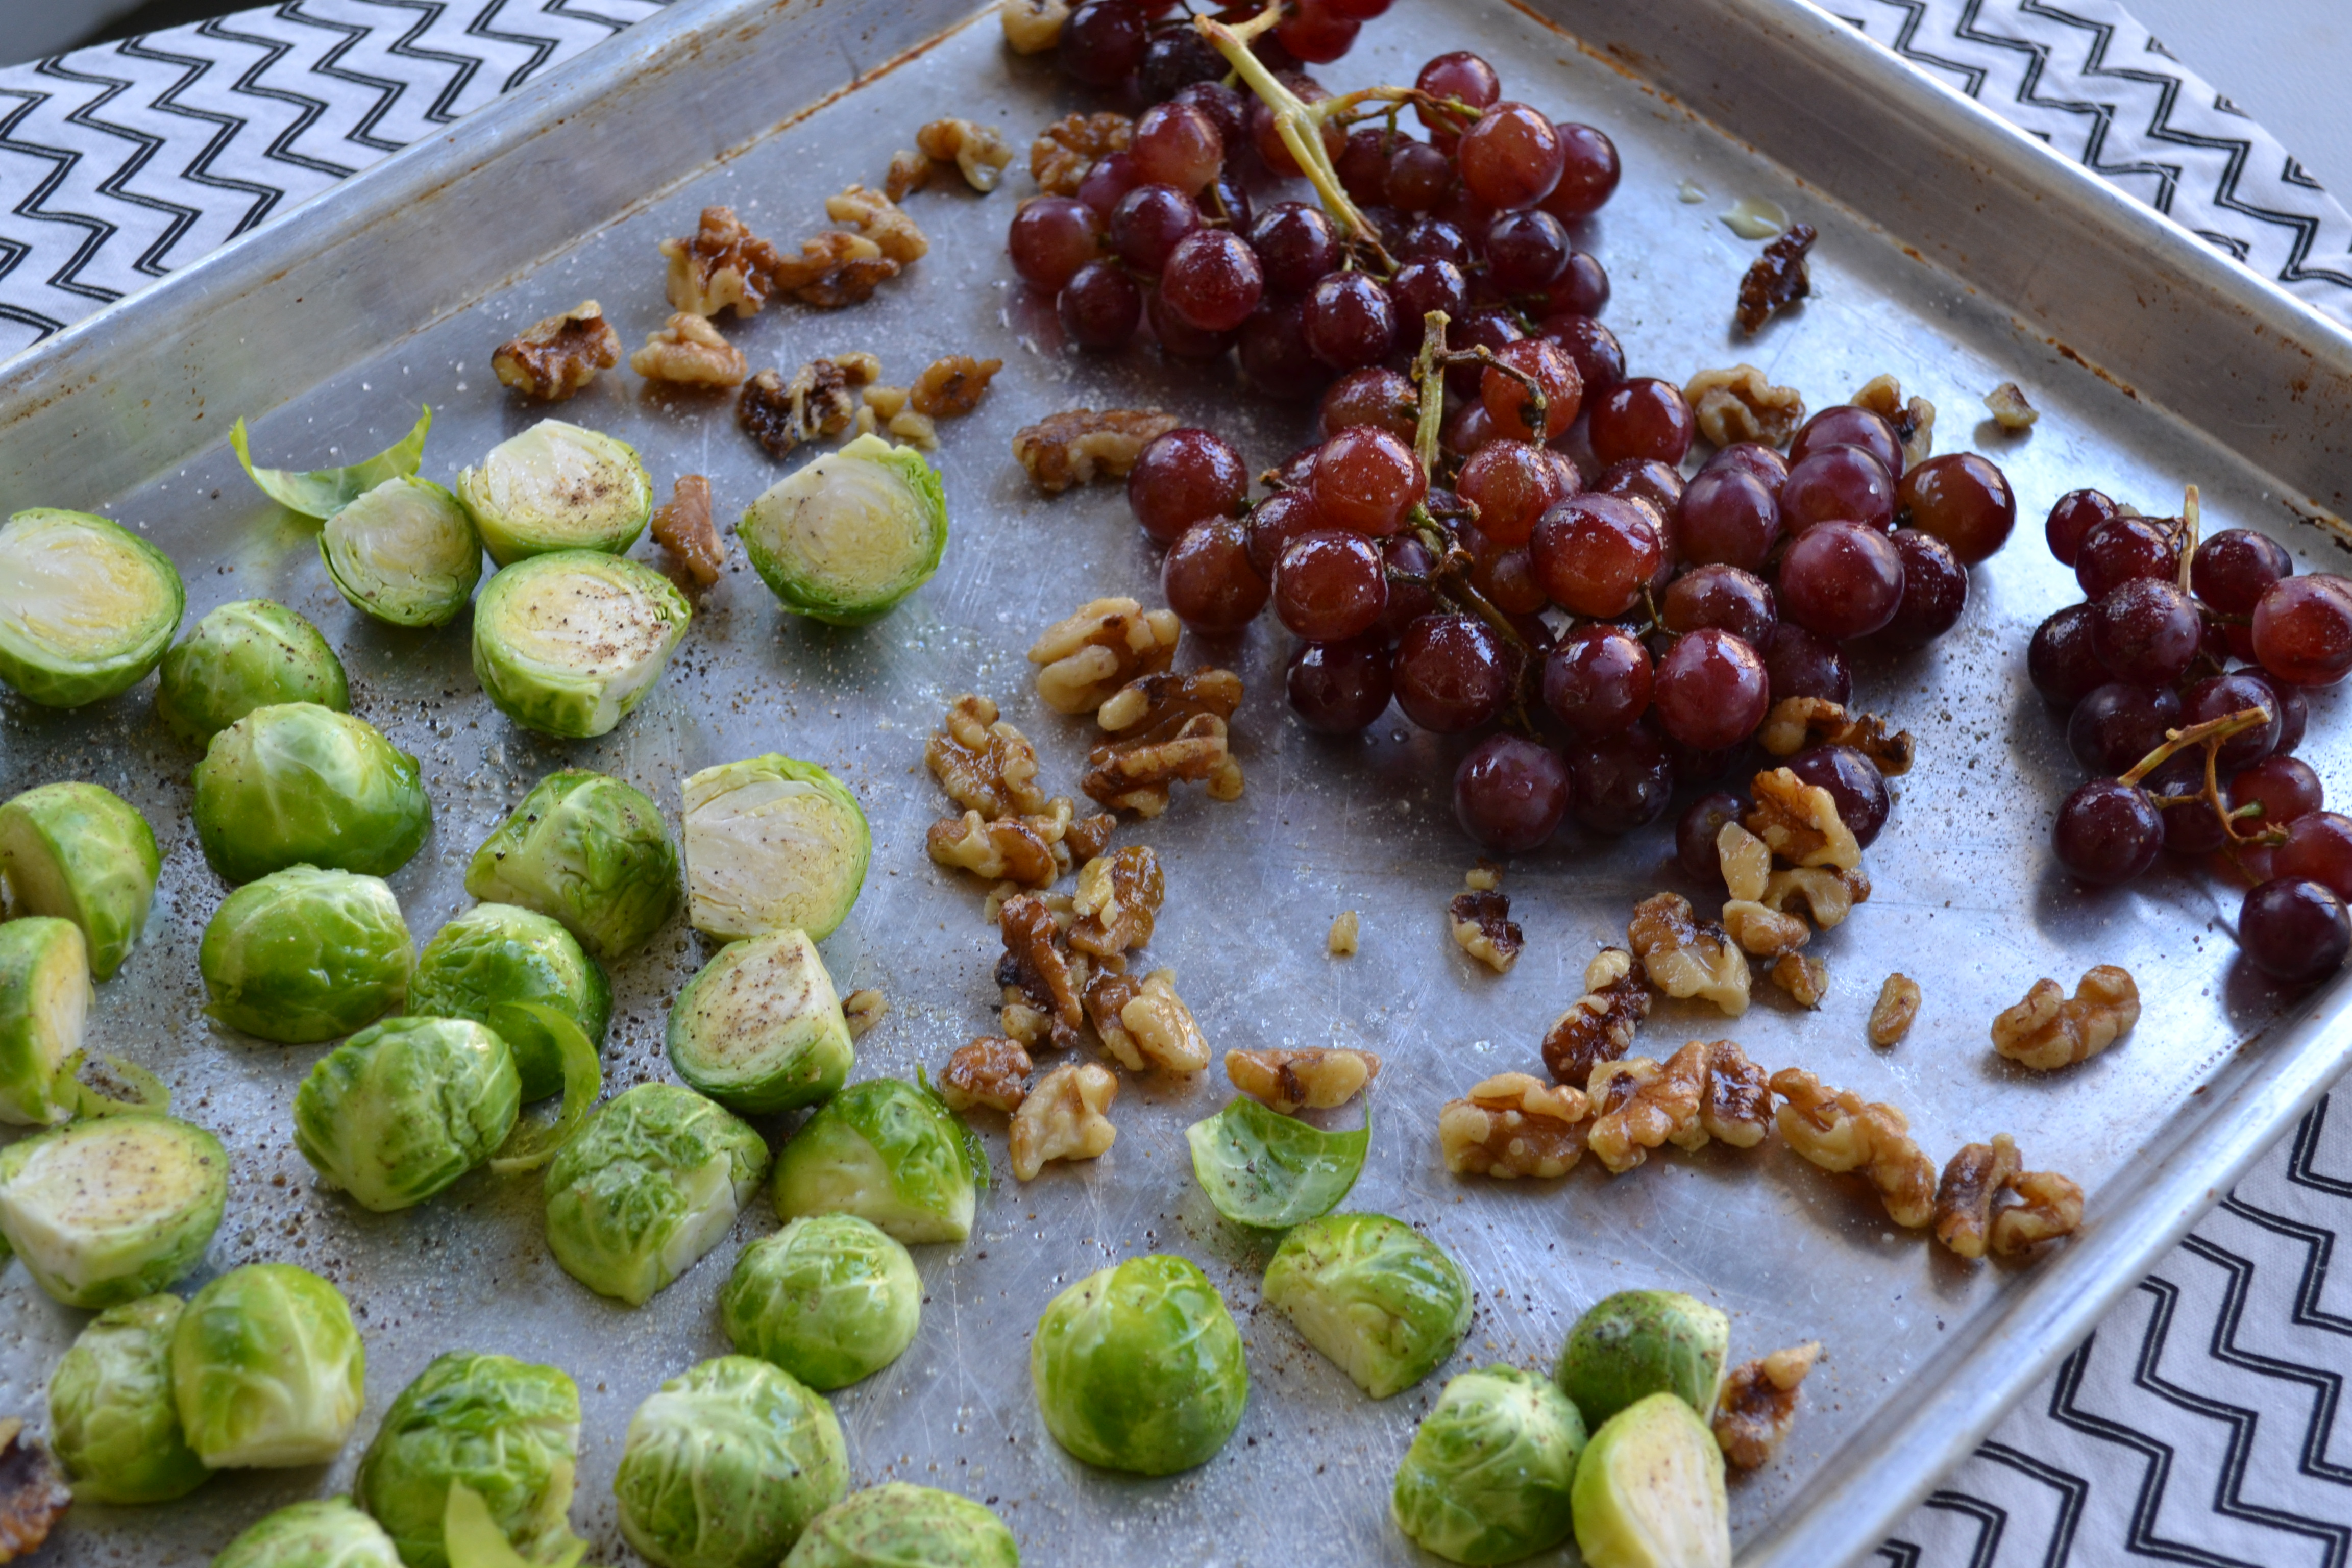 ROASTED BRUSSELS SPROUTS, GRAPES, AND WALNUTS WITH BALSAMIC DRIZZLE